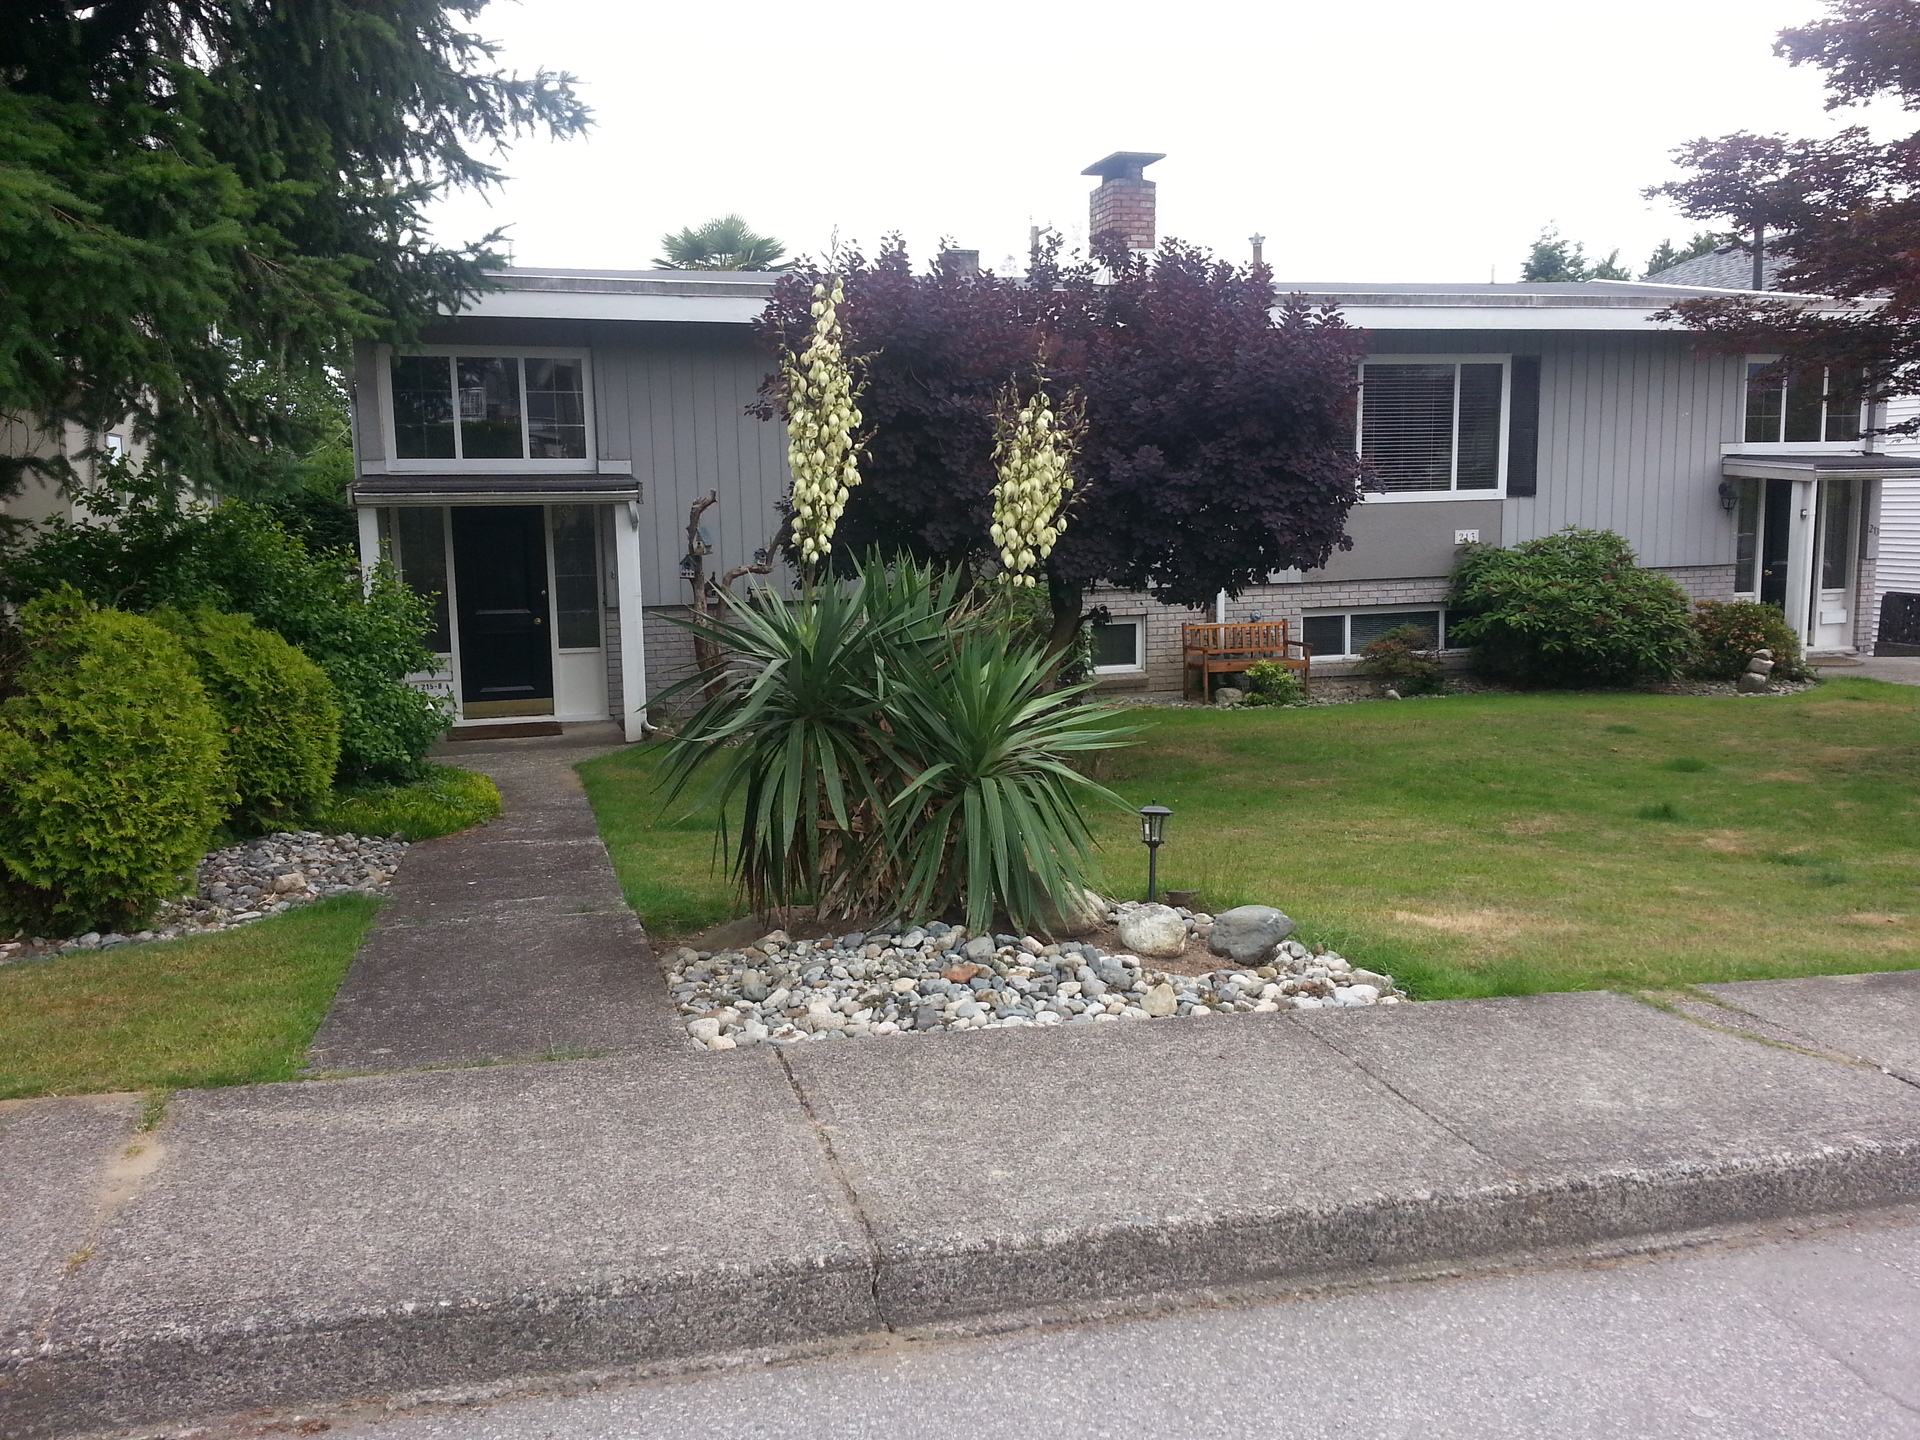 20180704_171652 at 213 - 215 21st Street East, Central Lonsdale, North Vancouver